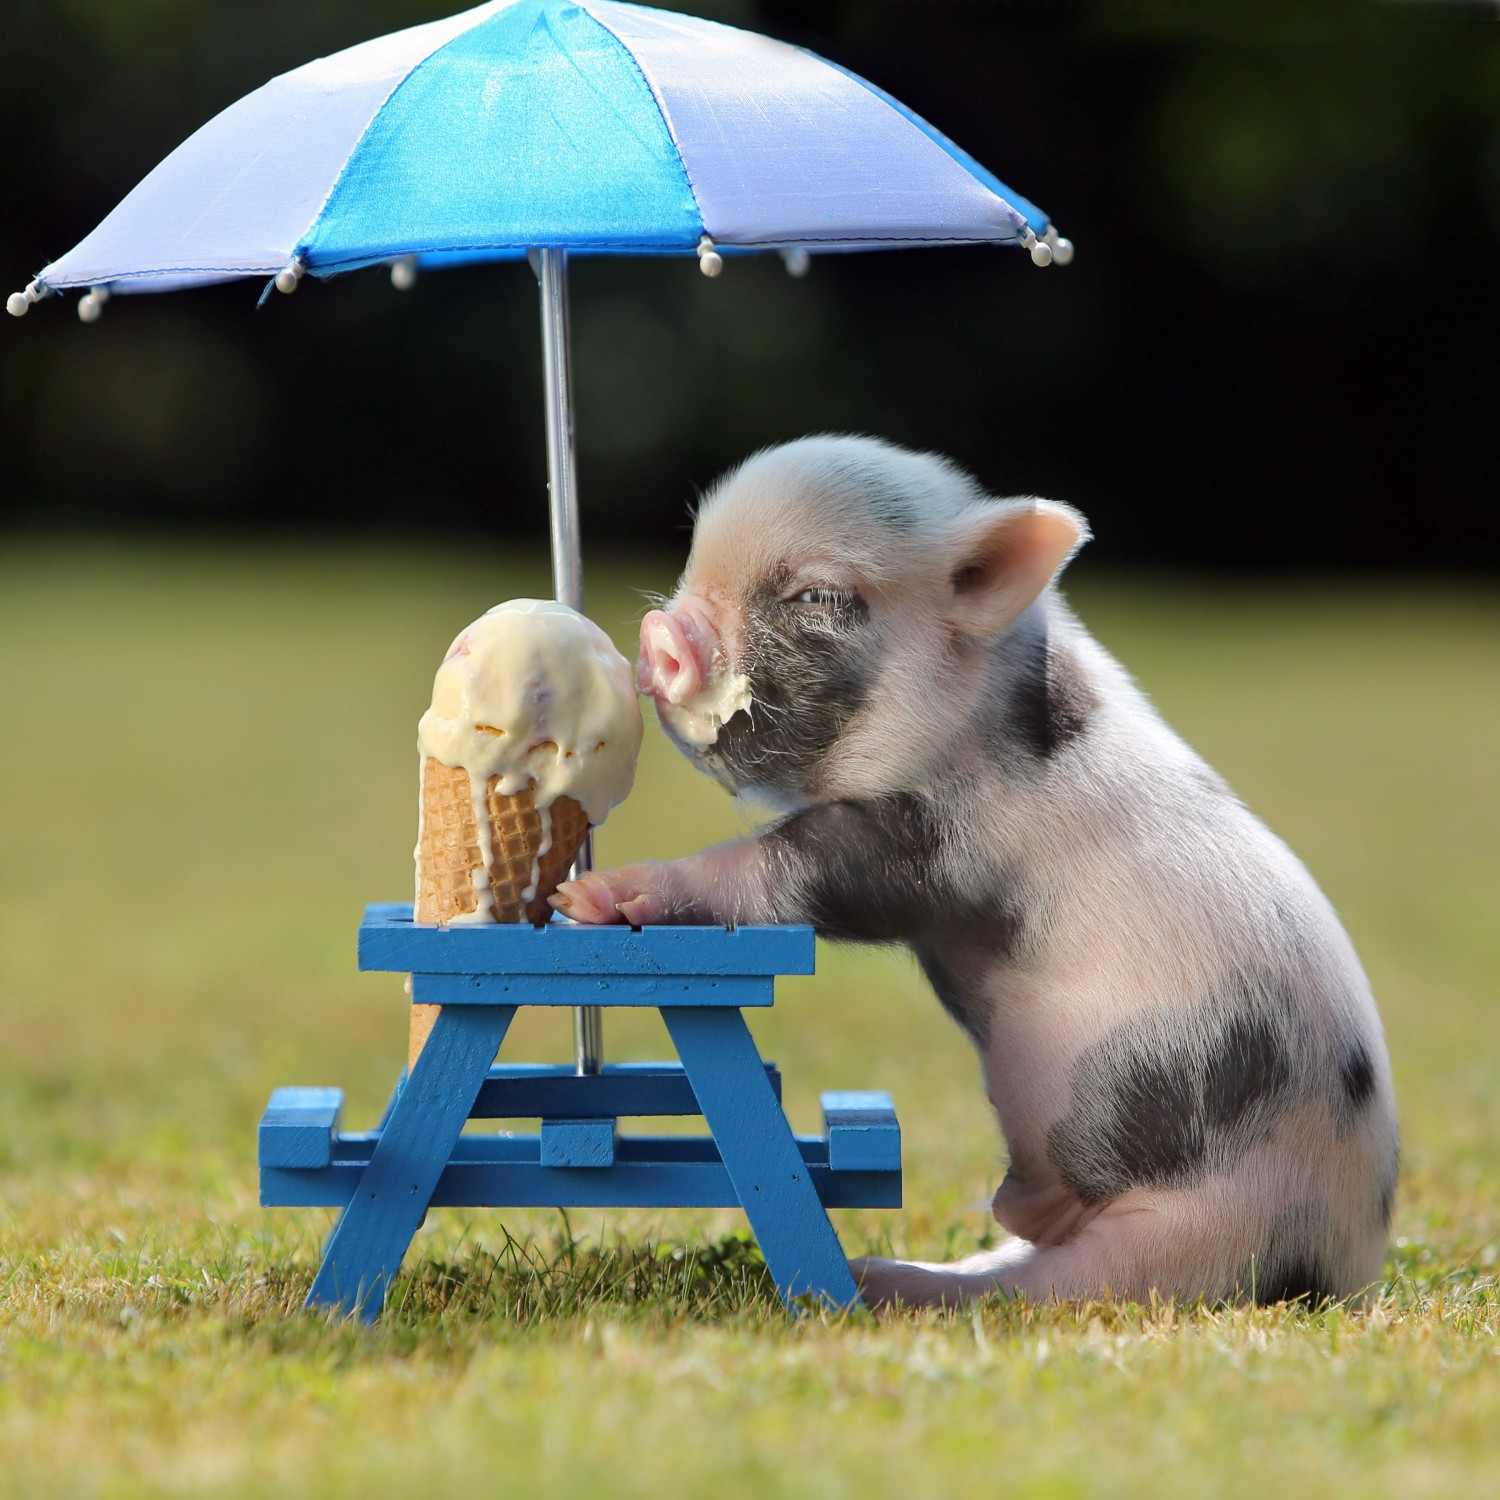 Bebe cerdito onsu cono de nieve - What do miniature pigs eat ...